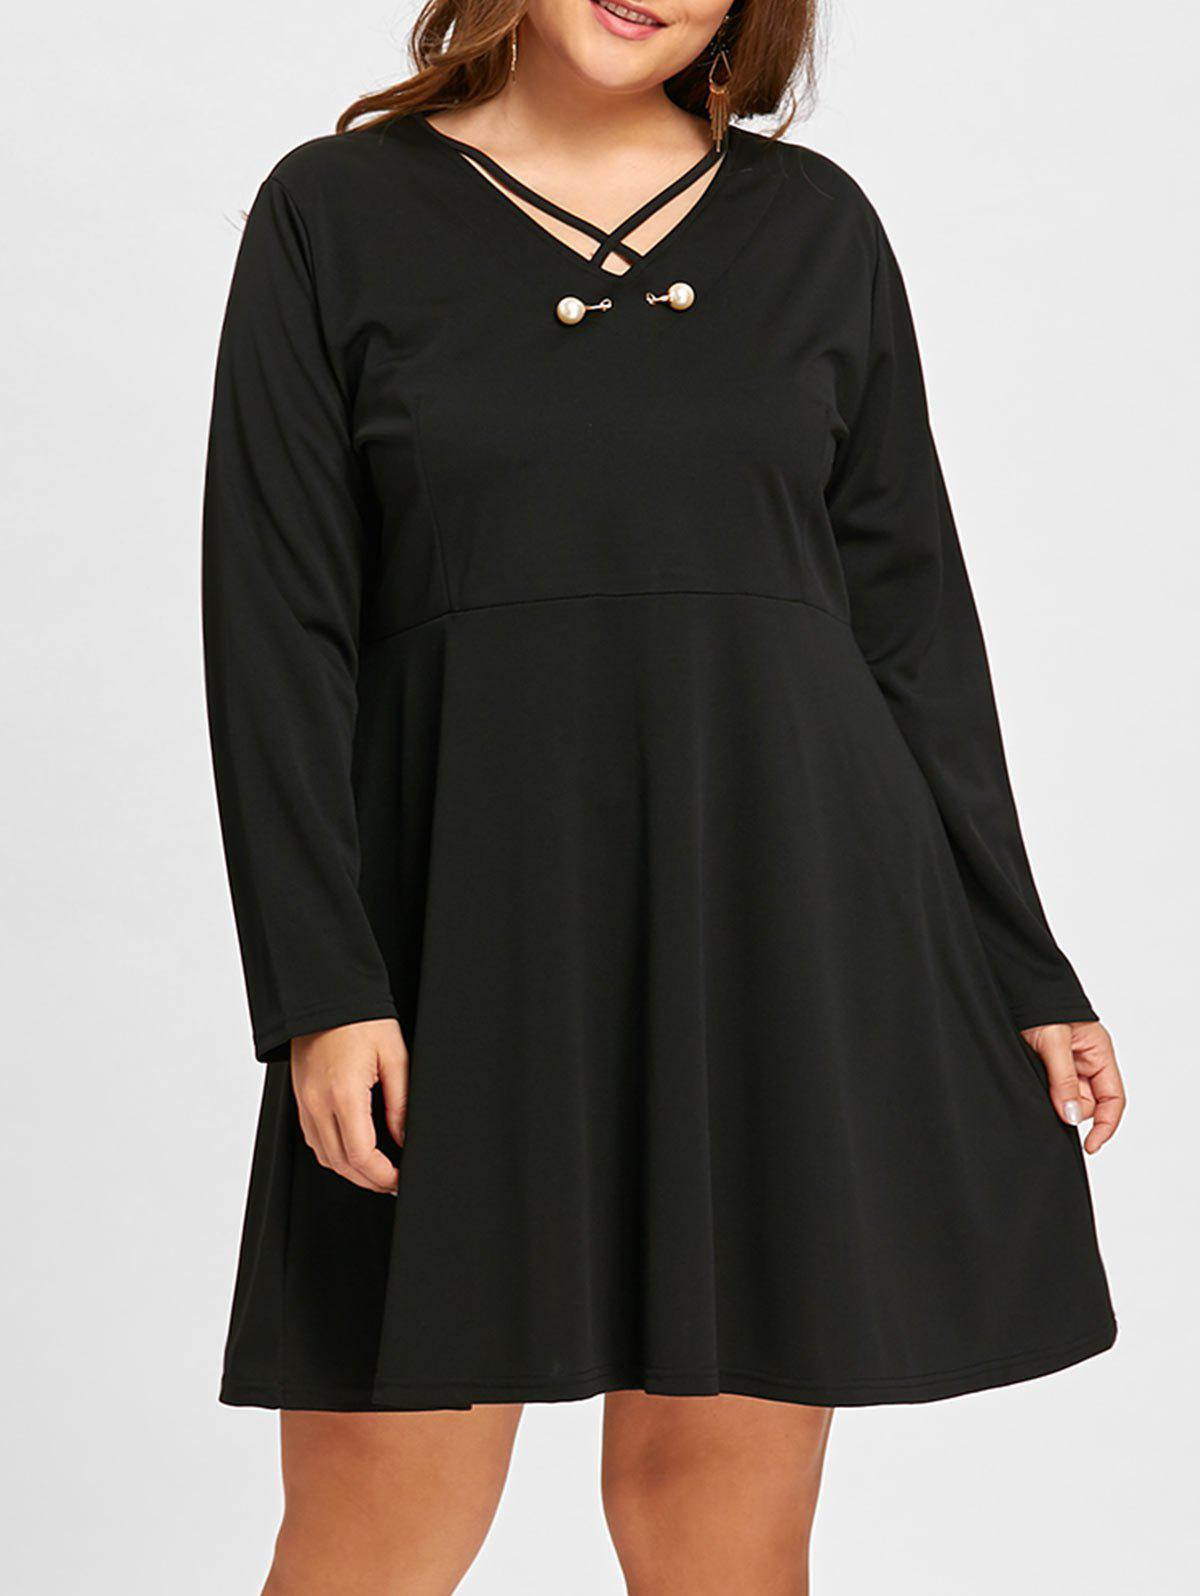 Plus Size Lattice Faux Pearl Embellished Dress - BLACK 5XL